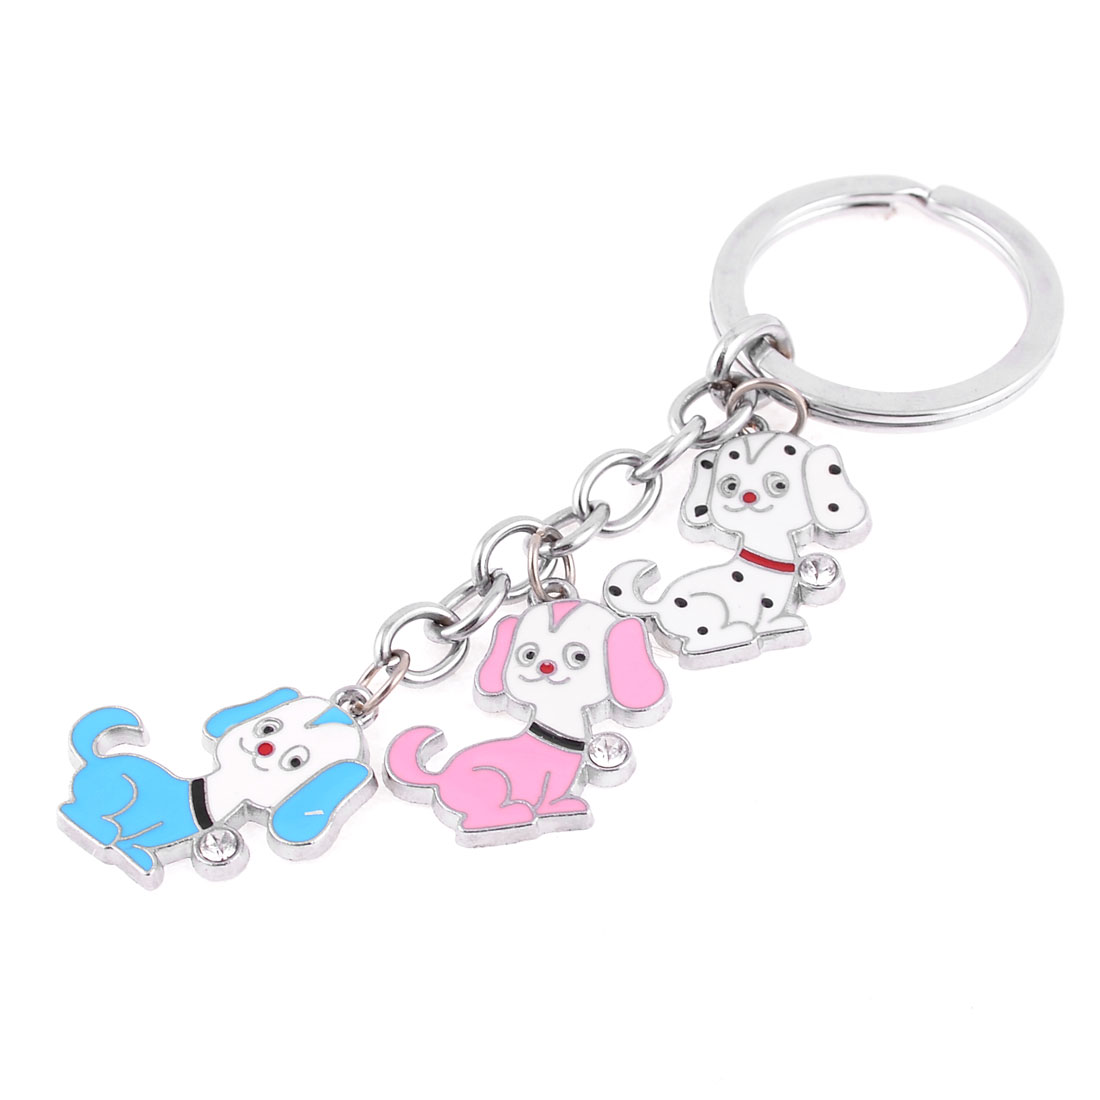 Metal Three Colored Puppy Dangling Pendant Keychain Keyring Hanging Ornament